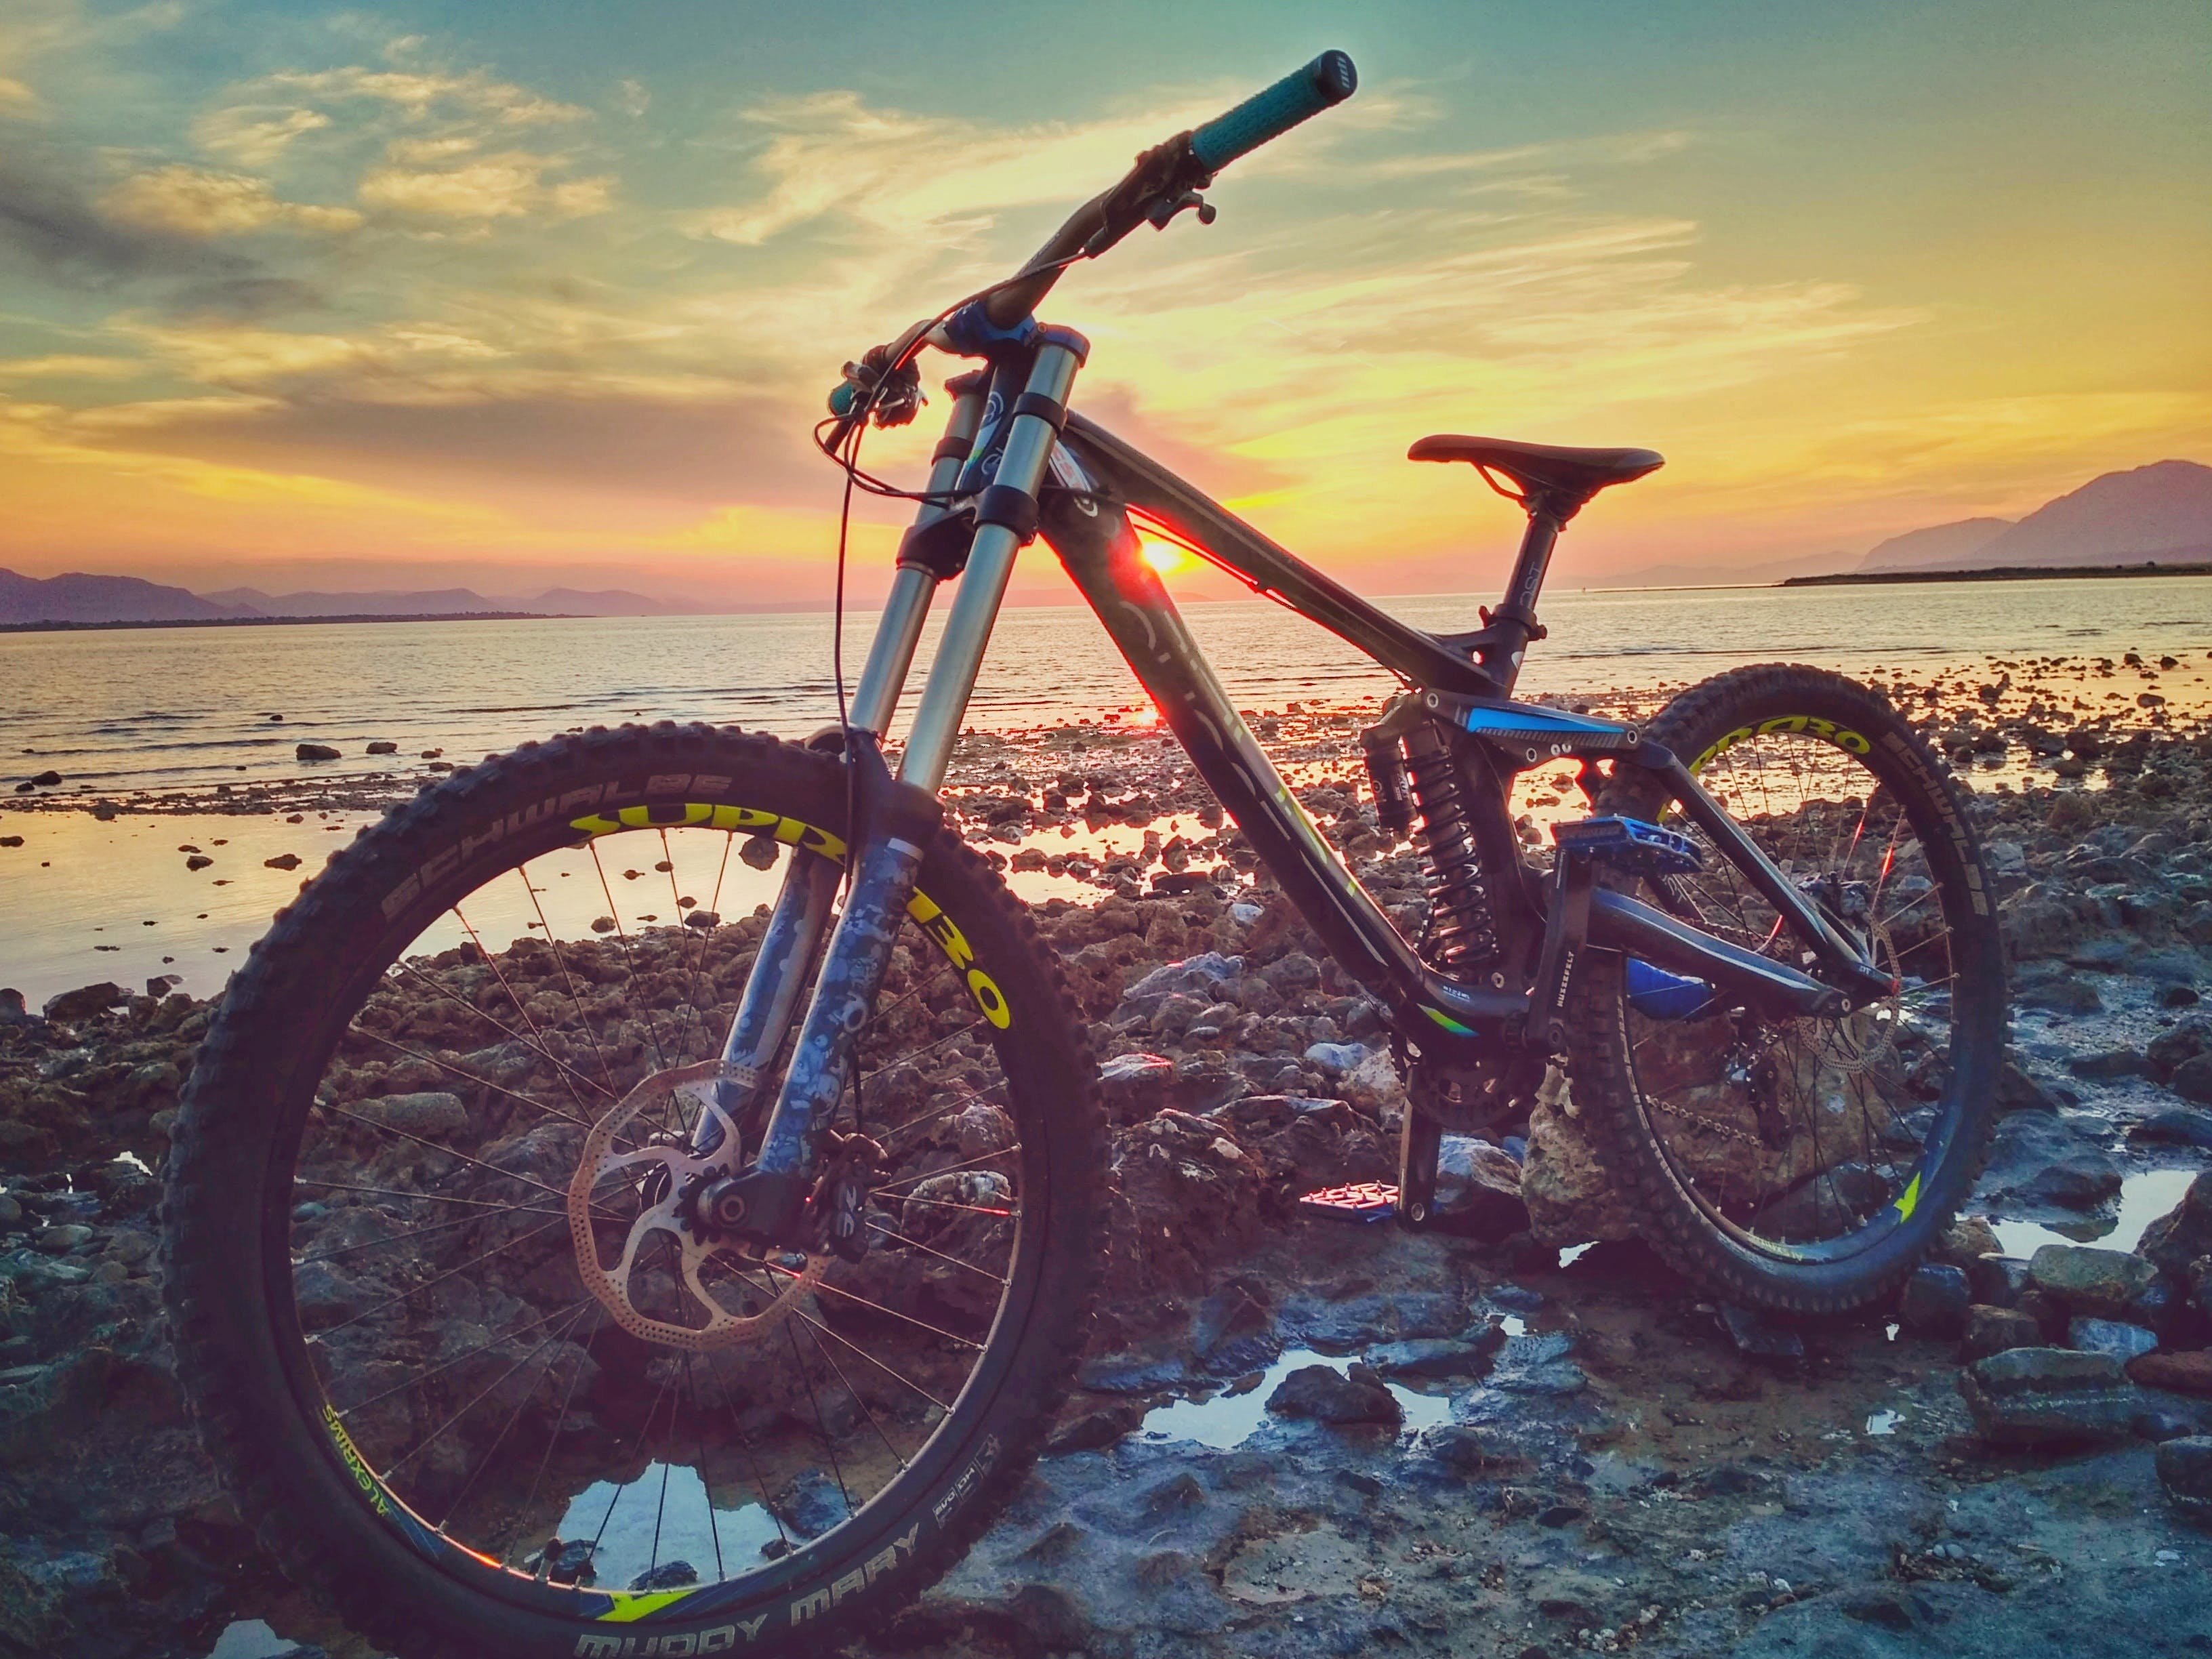 adventure, beach, bicycle